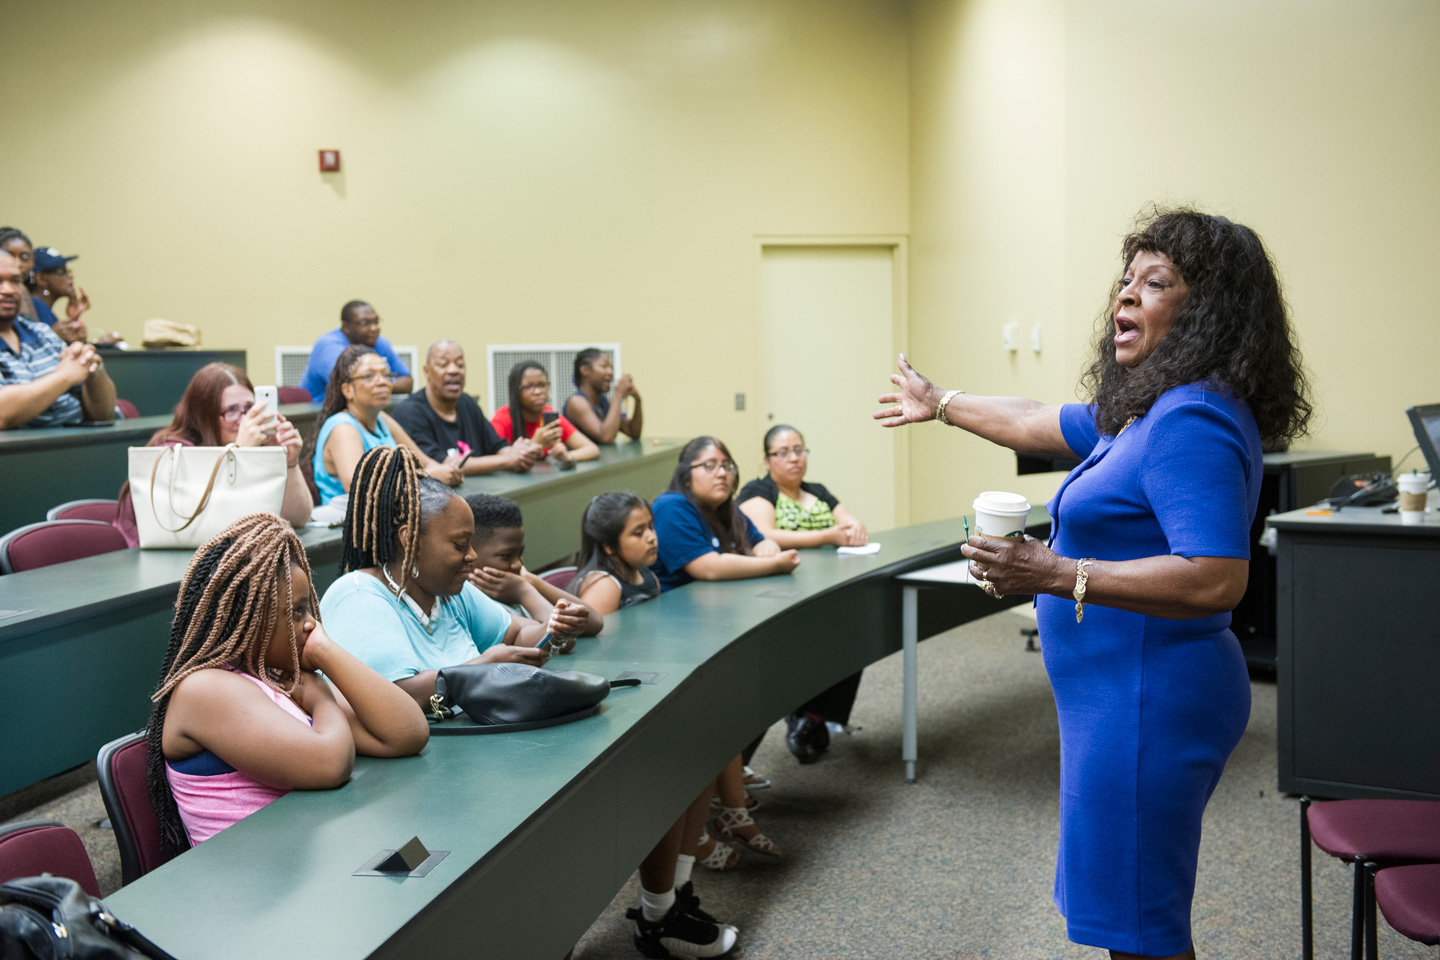 Motown legend Martha Reeves visits Project Upward Bound students at OU